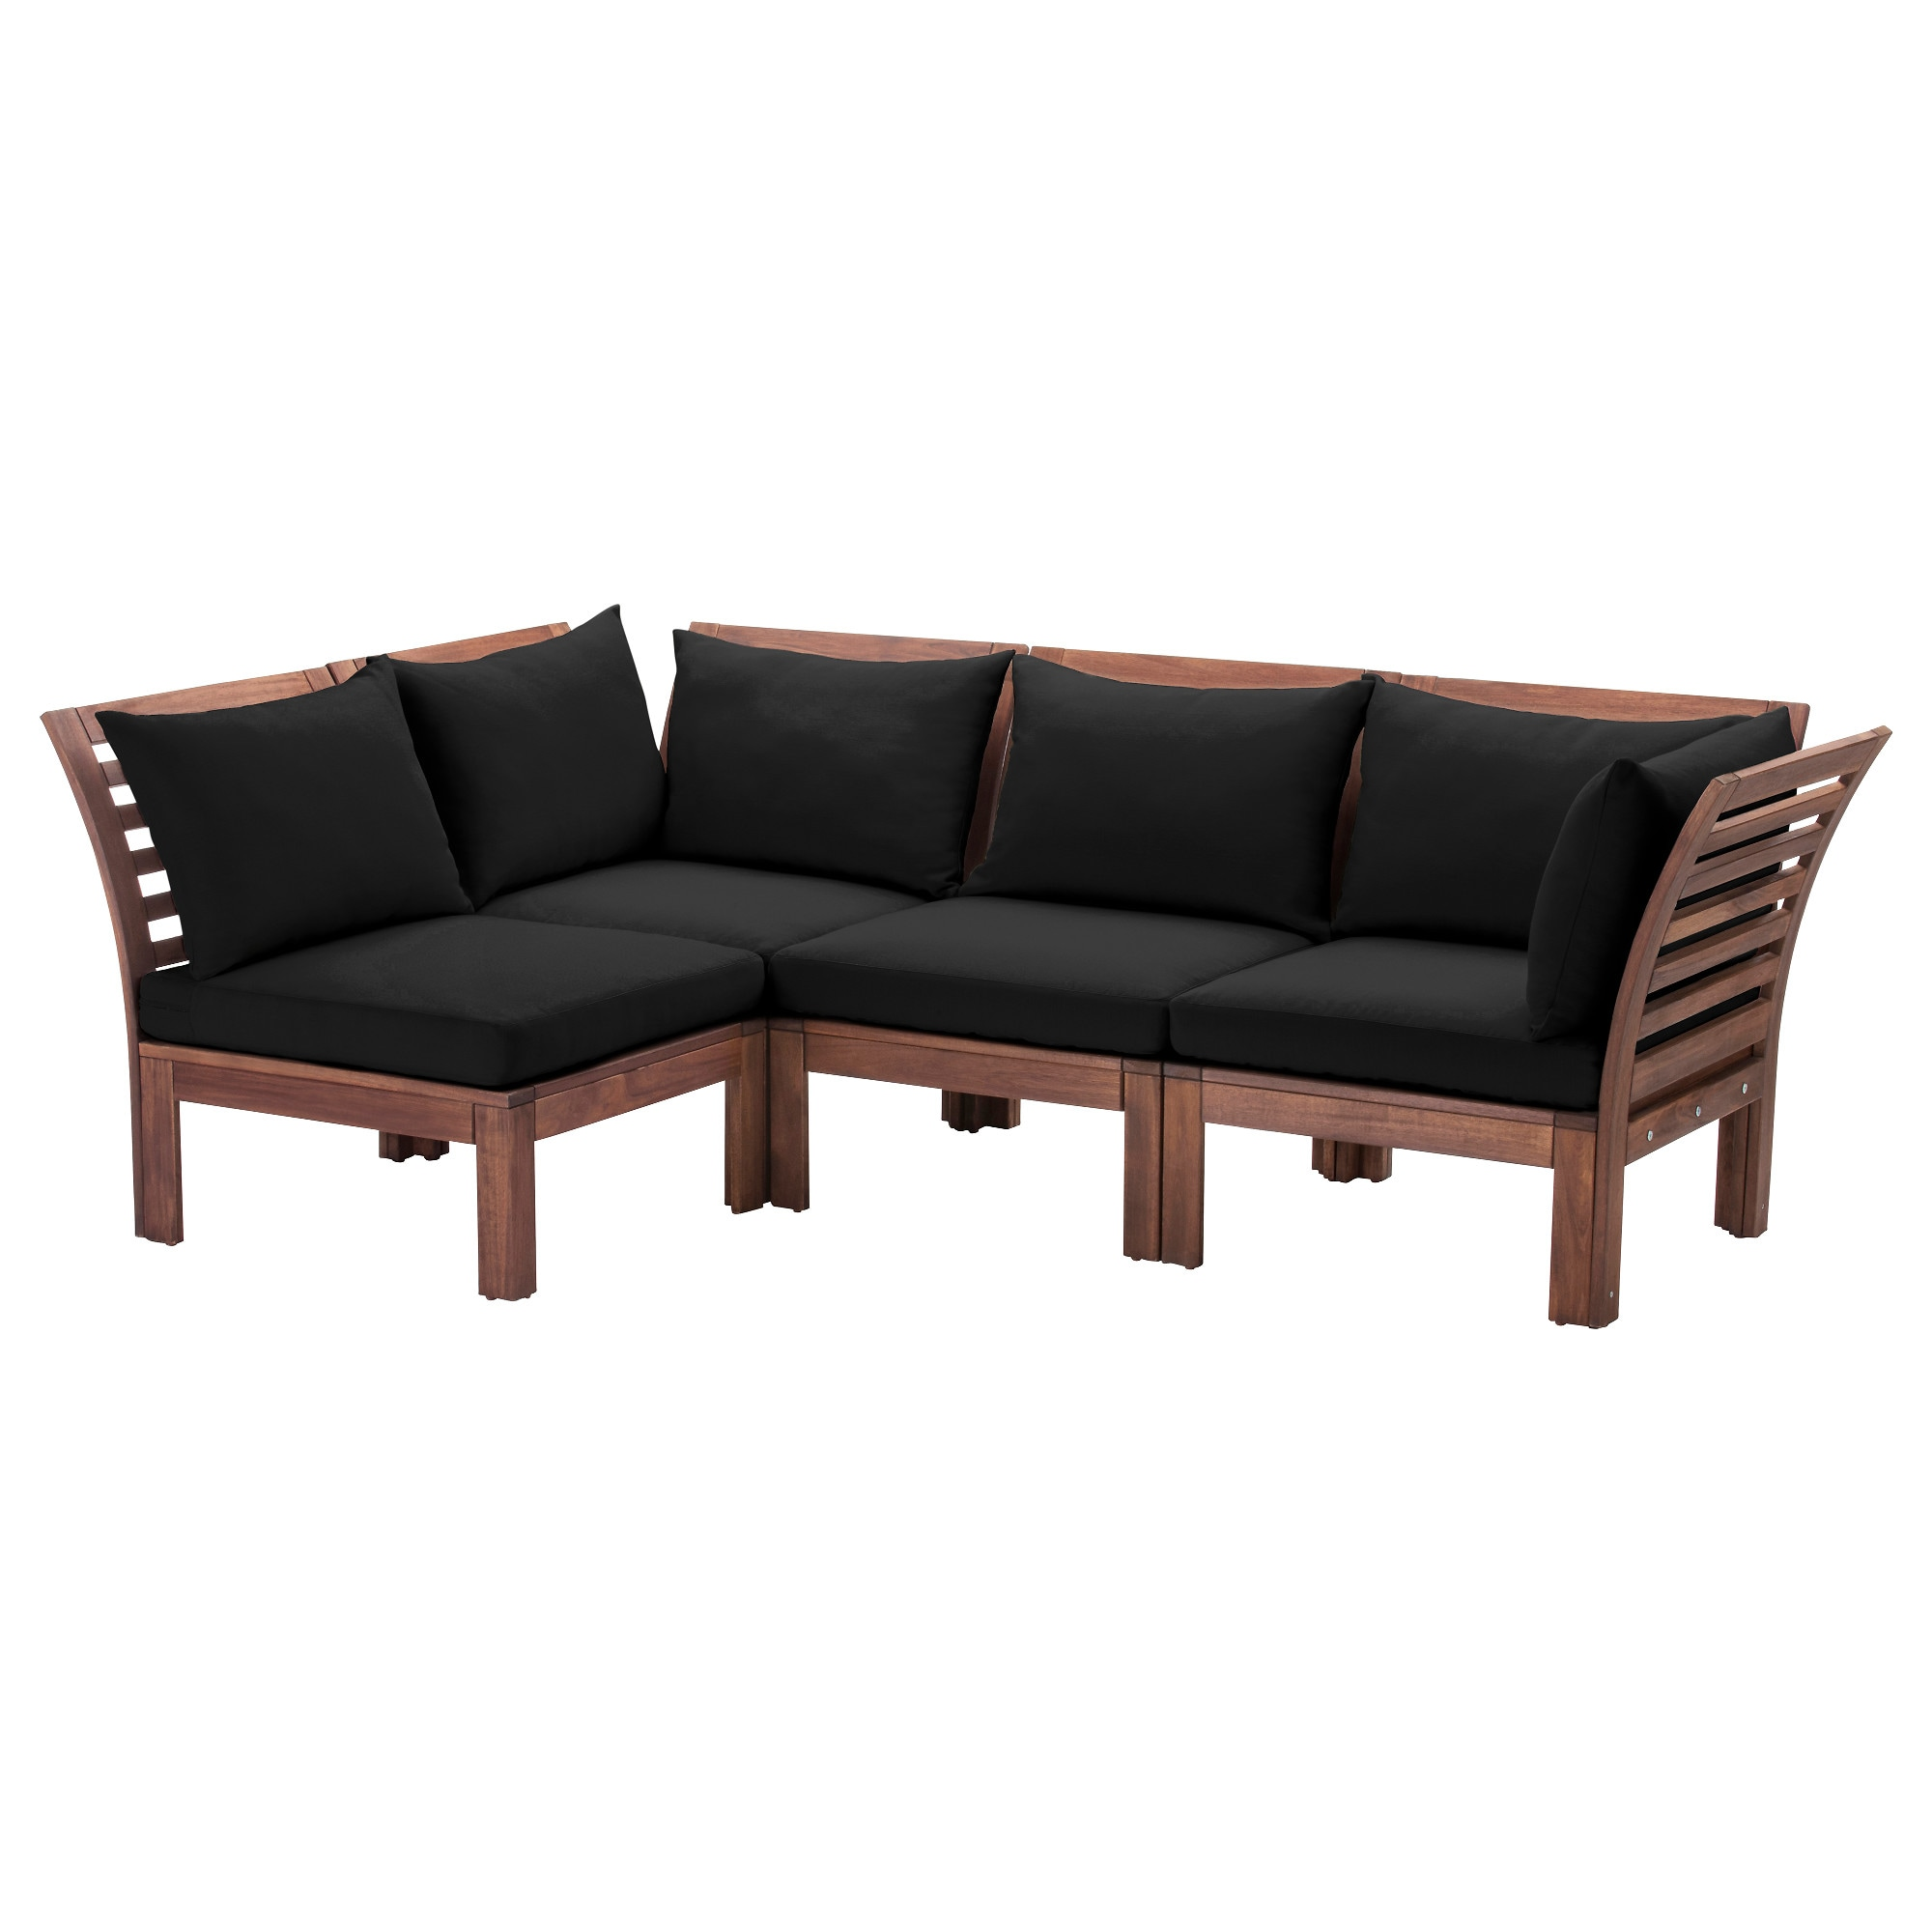 ÄPPLARÖ 4 Seat Sectional, Outdoor